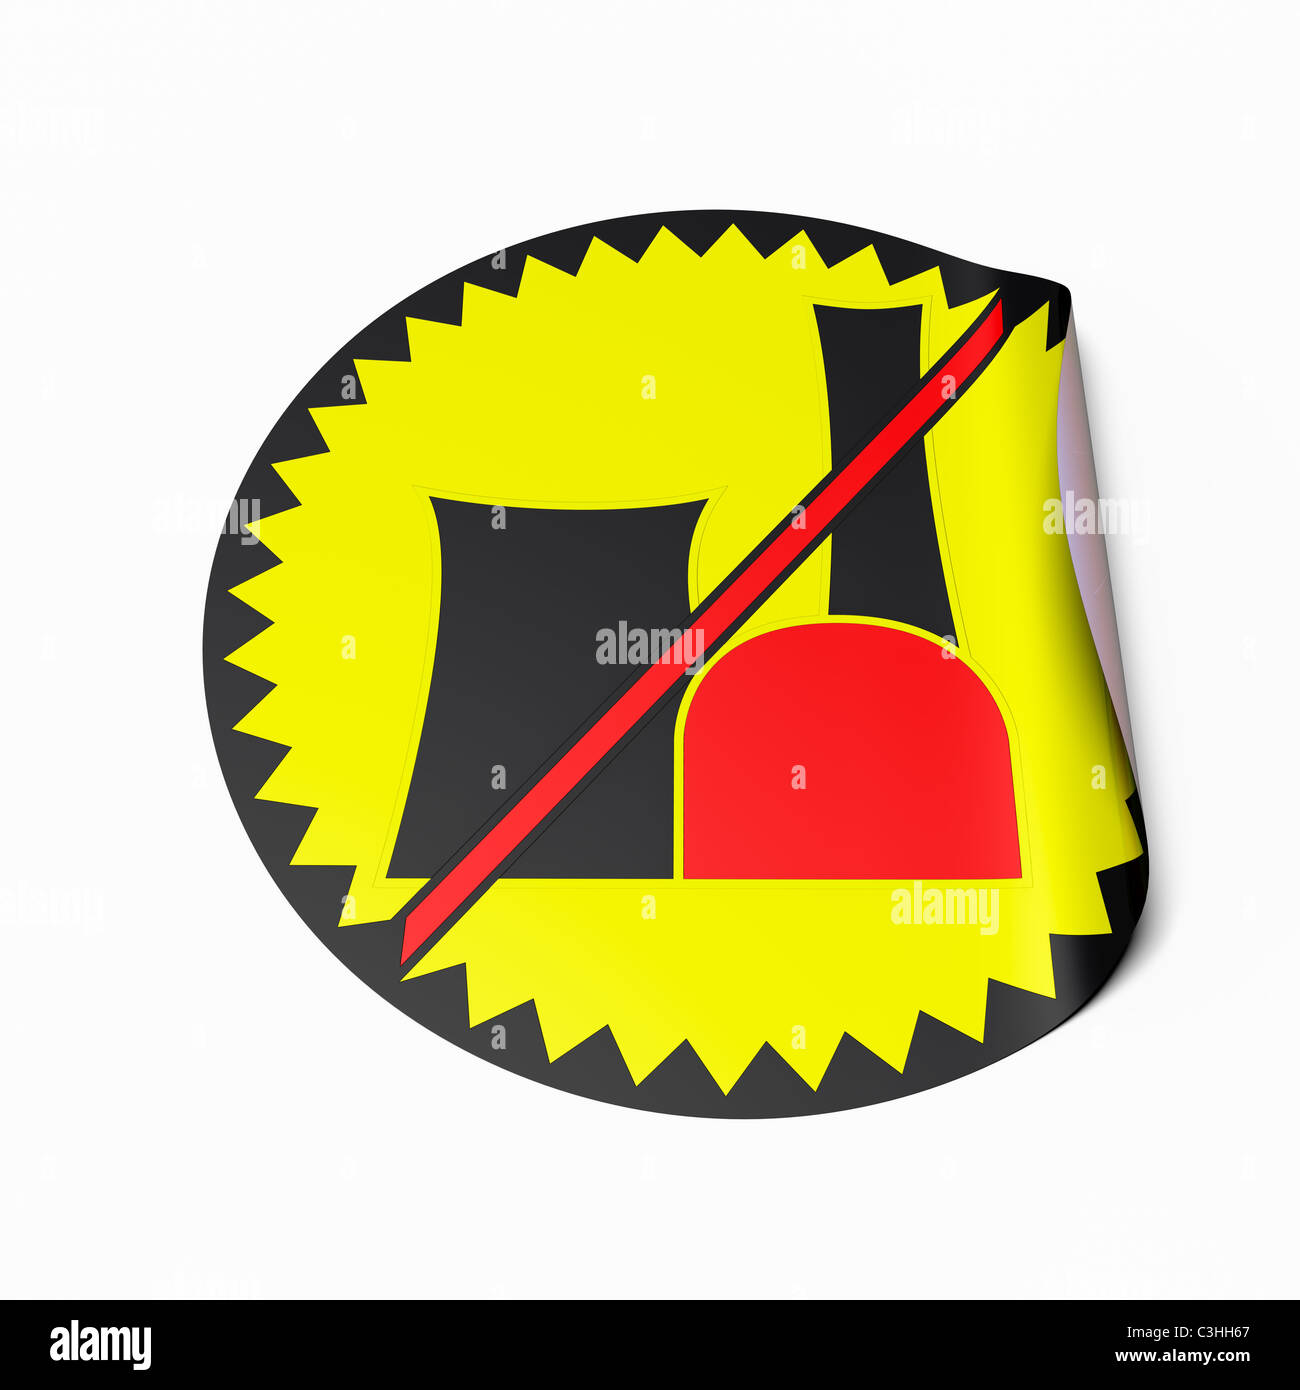 High resolution image of a sticker with crossed out radioactive symbol. Conceptual image for nuclear power phaseout. - Stock Image